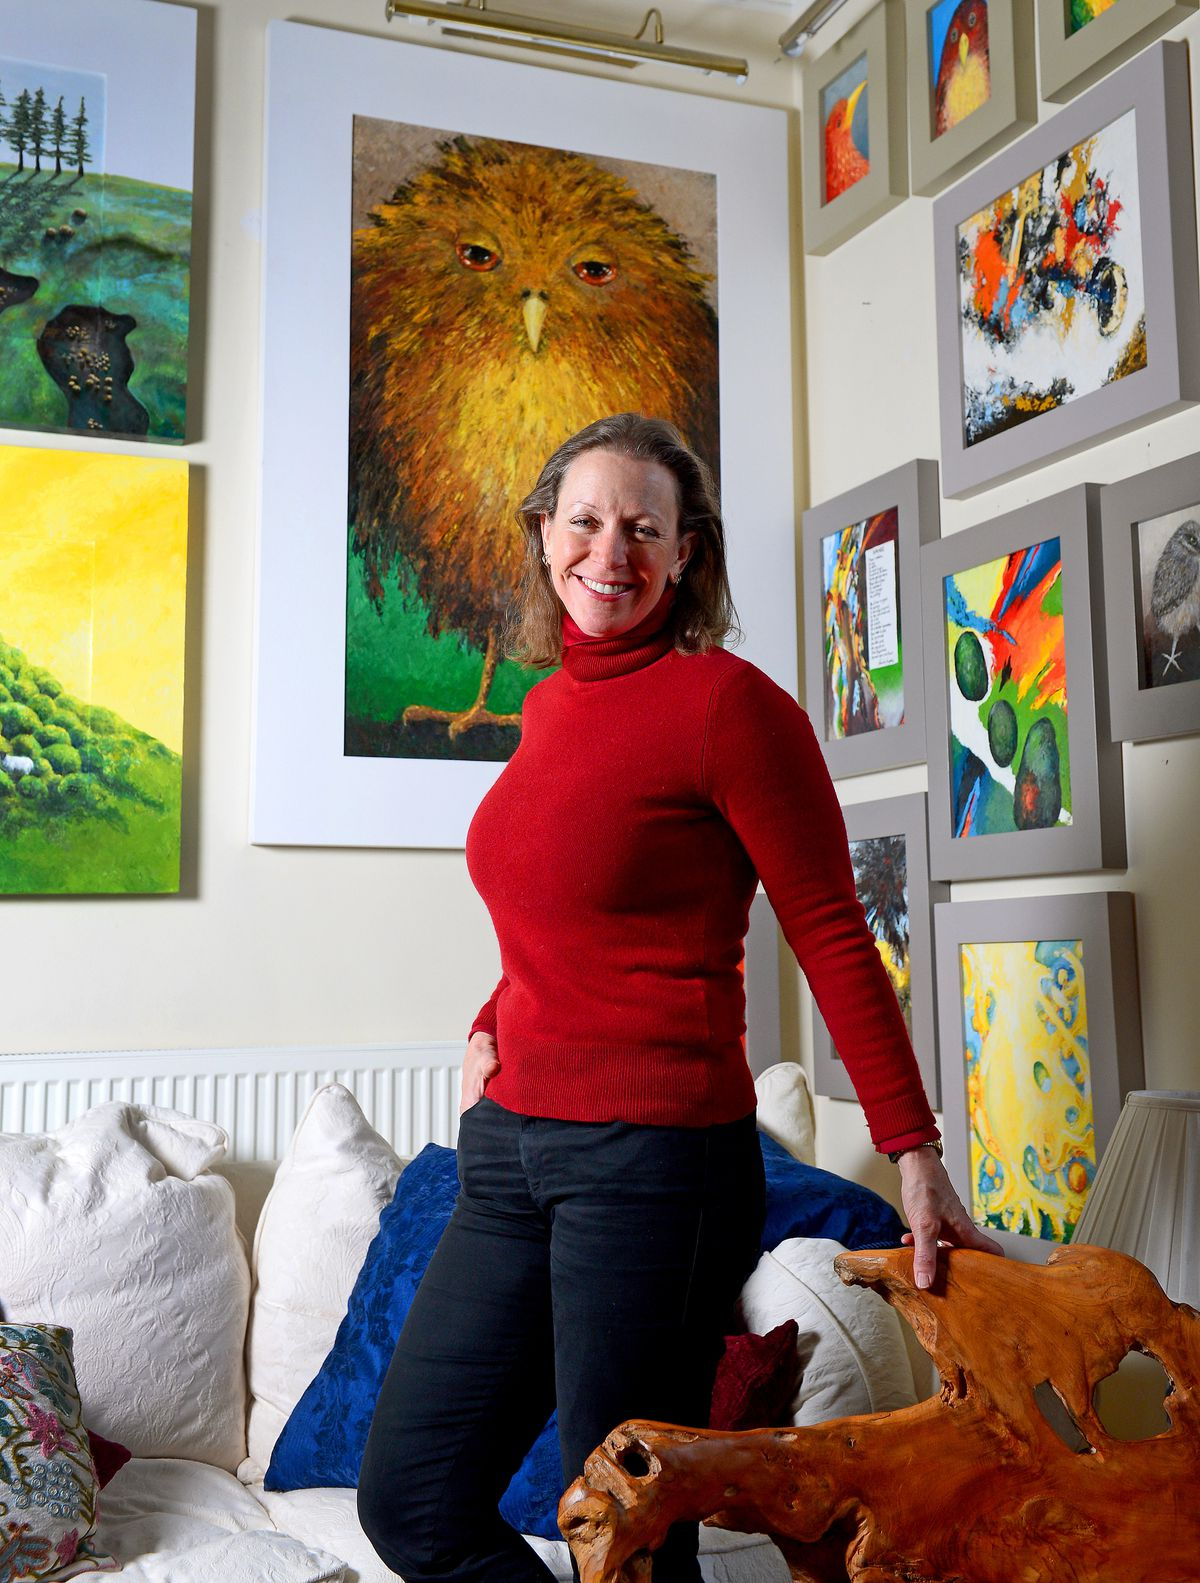 Frieda Hughes at her home in Caerhowel, near Newtown, with some of her art works